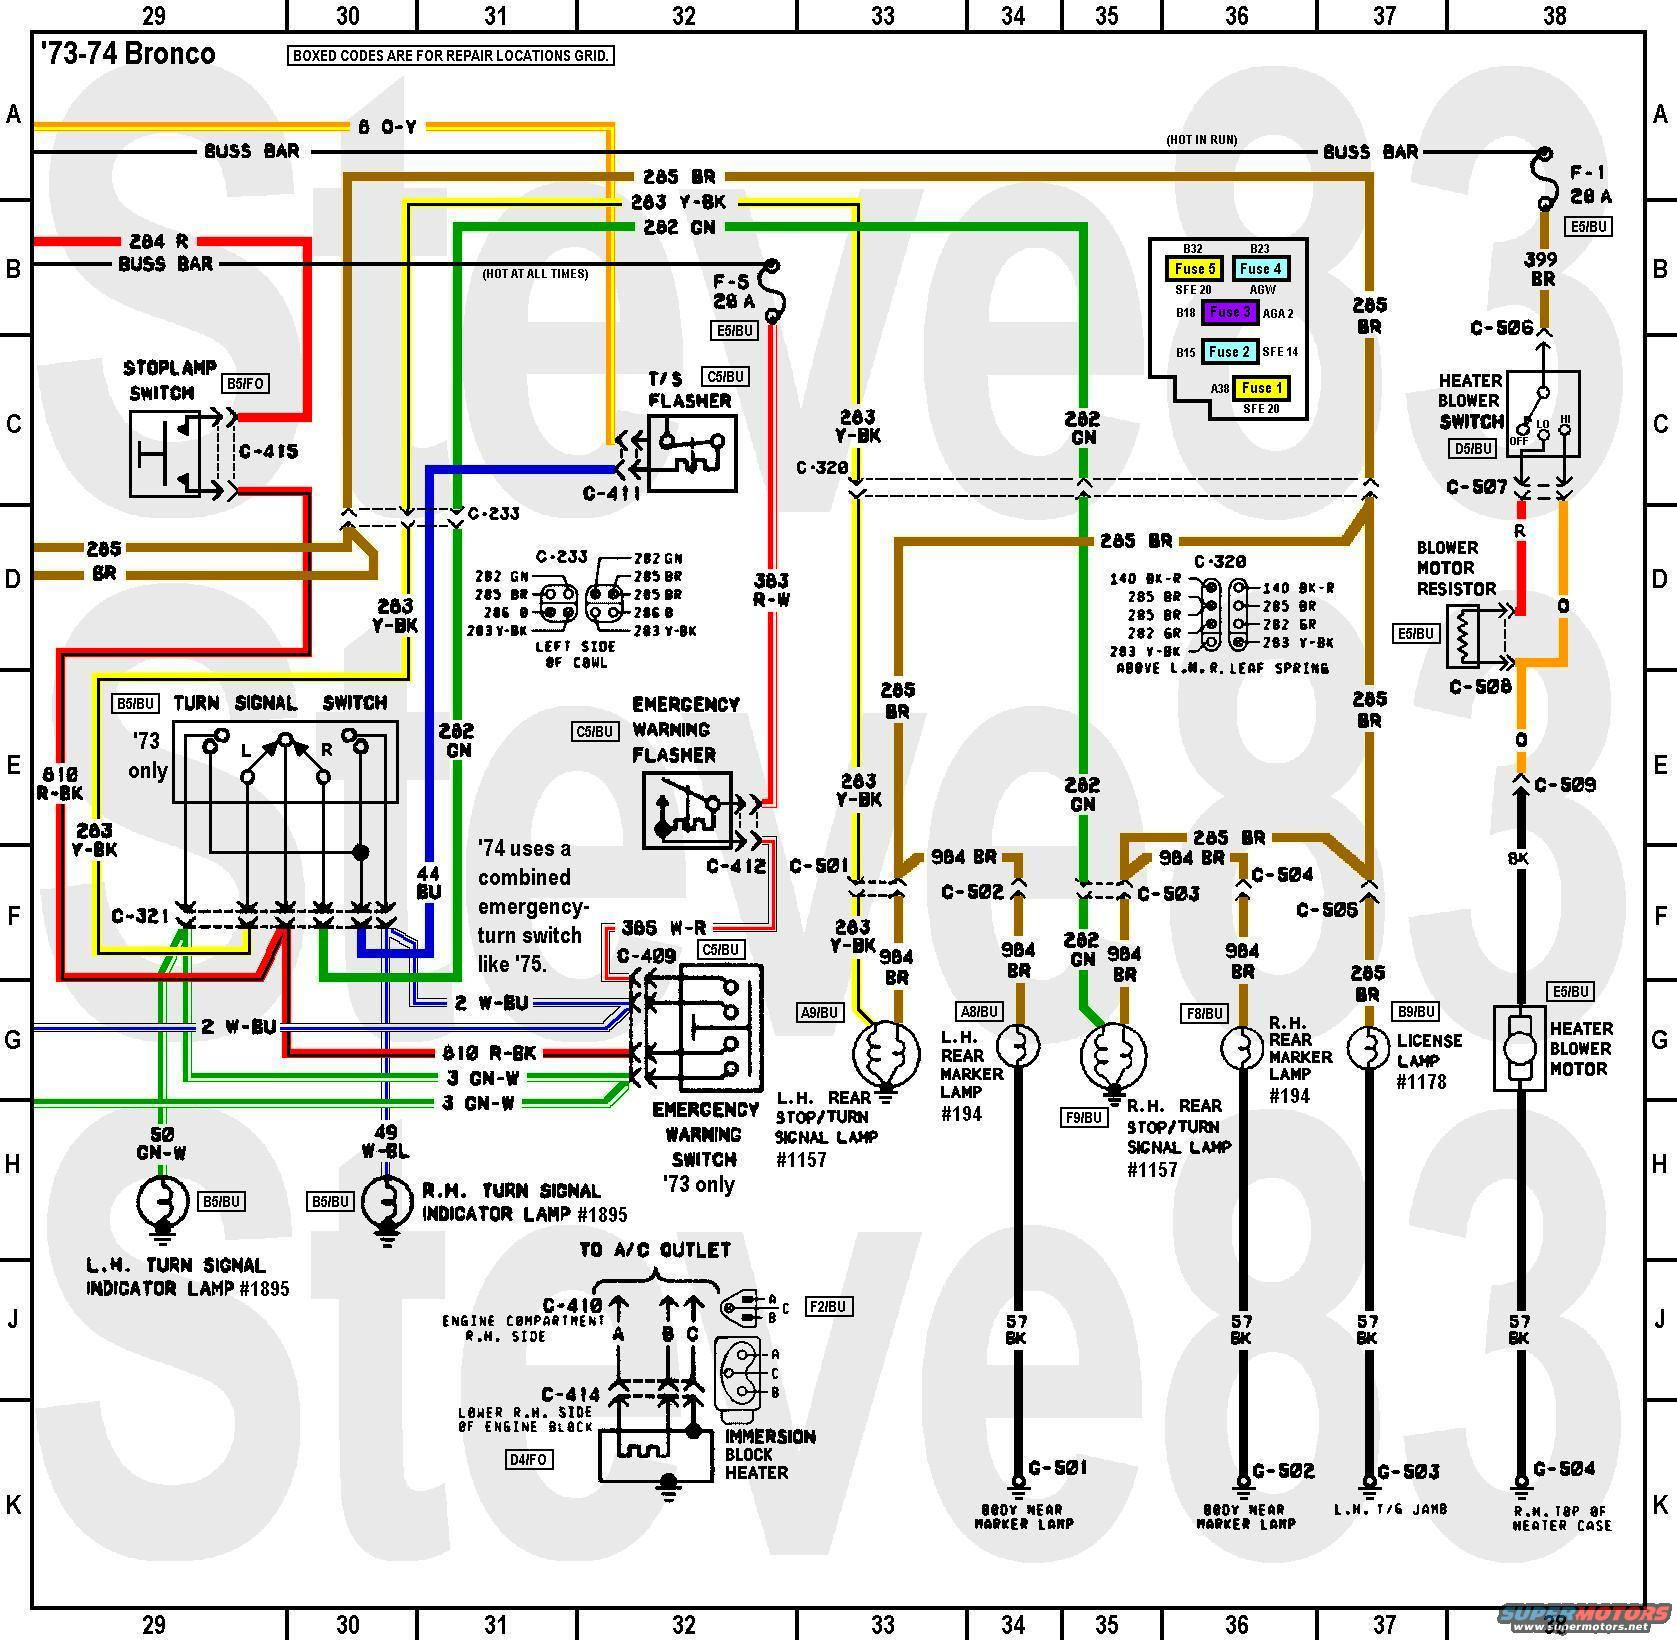 88 Fj62 3fe Vacuum Hose Diagram together with 1998 Prelude Fuse Box together with 96 Honda Civic Fuse Box Diagram likewise Hardware in addition RepairGuideContent. on 1998 honda civic wiring diagram